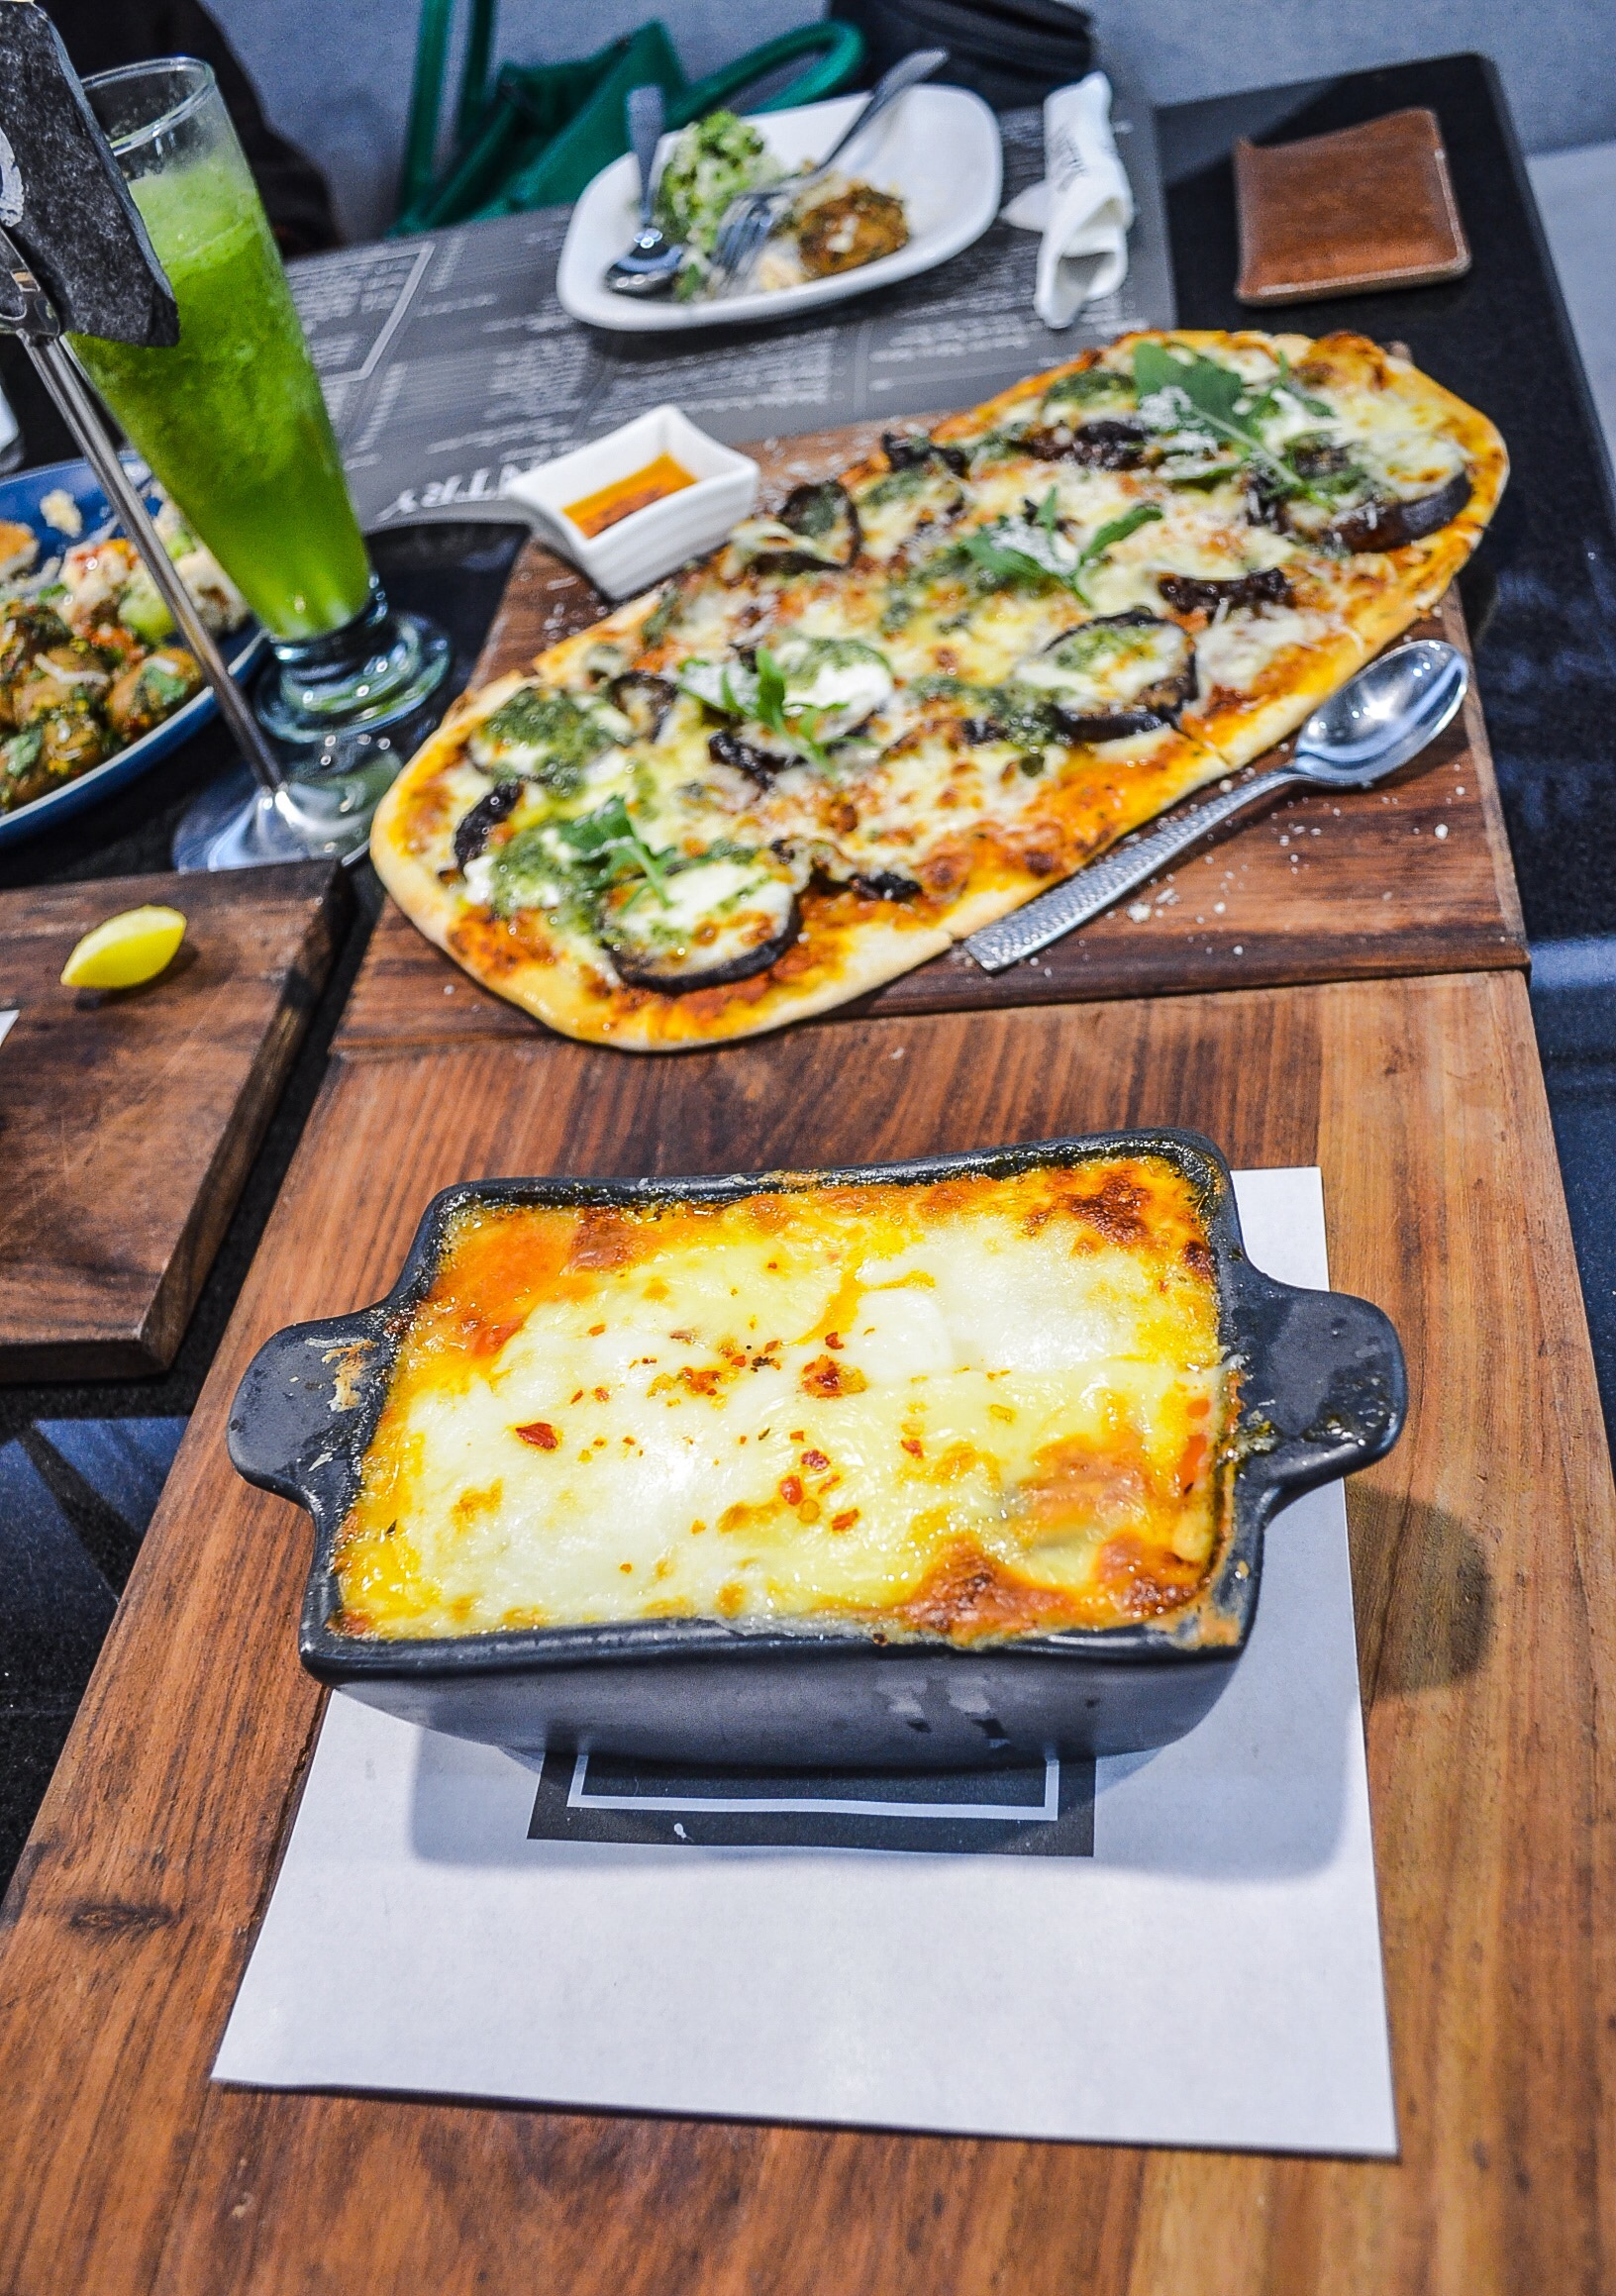 Comforting Carbs: Pizza Caponata and House Special Lasagna at The Pantry by The Polo Lounge (Emporium Mall).